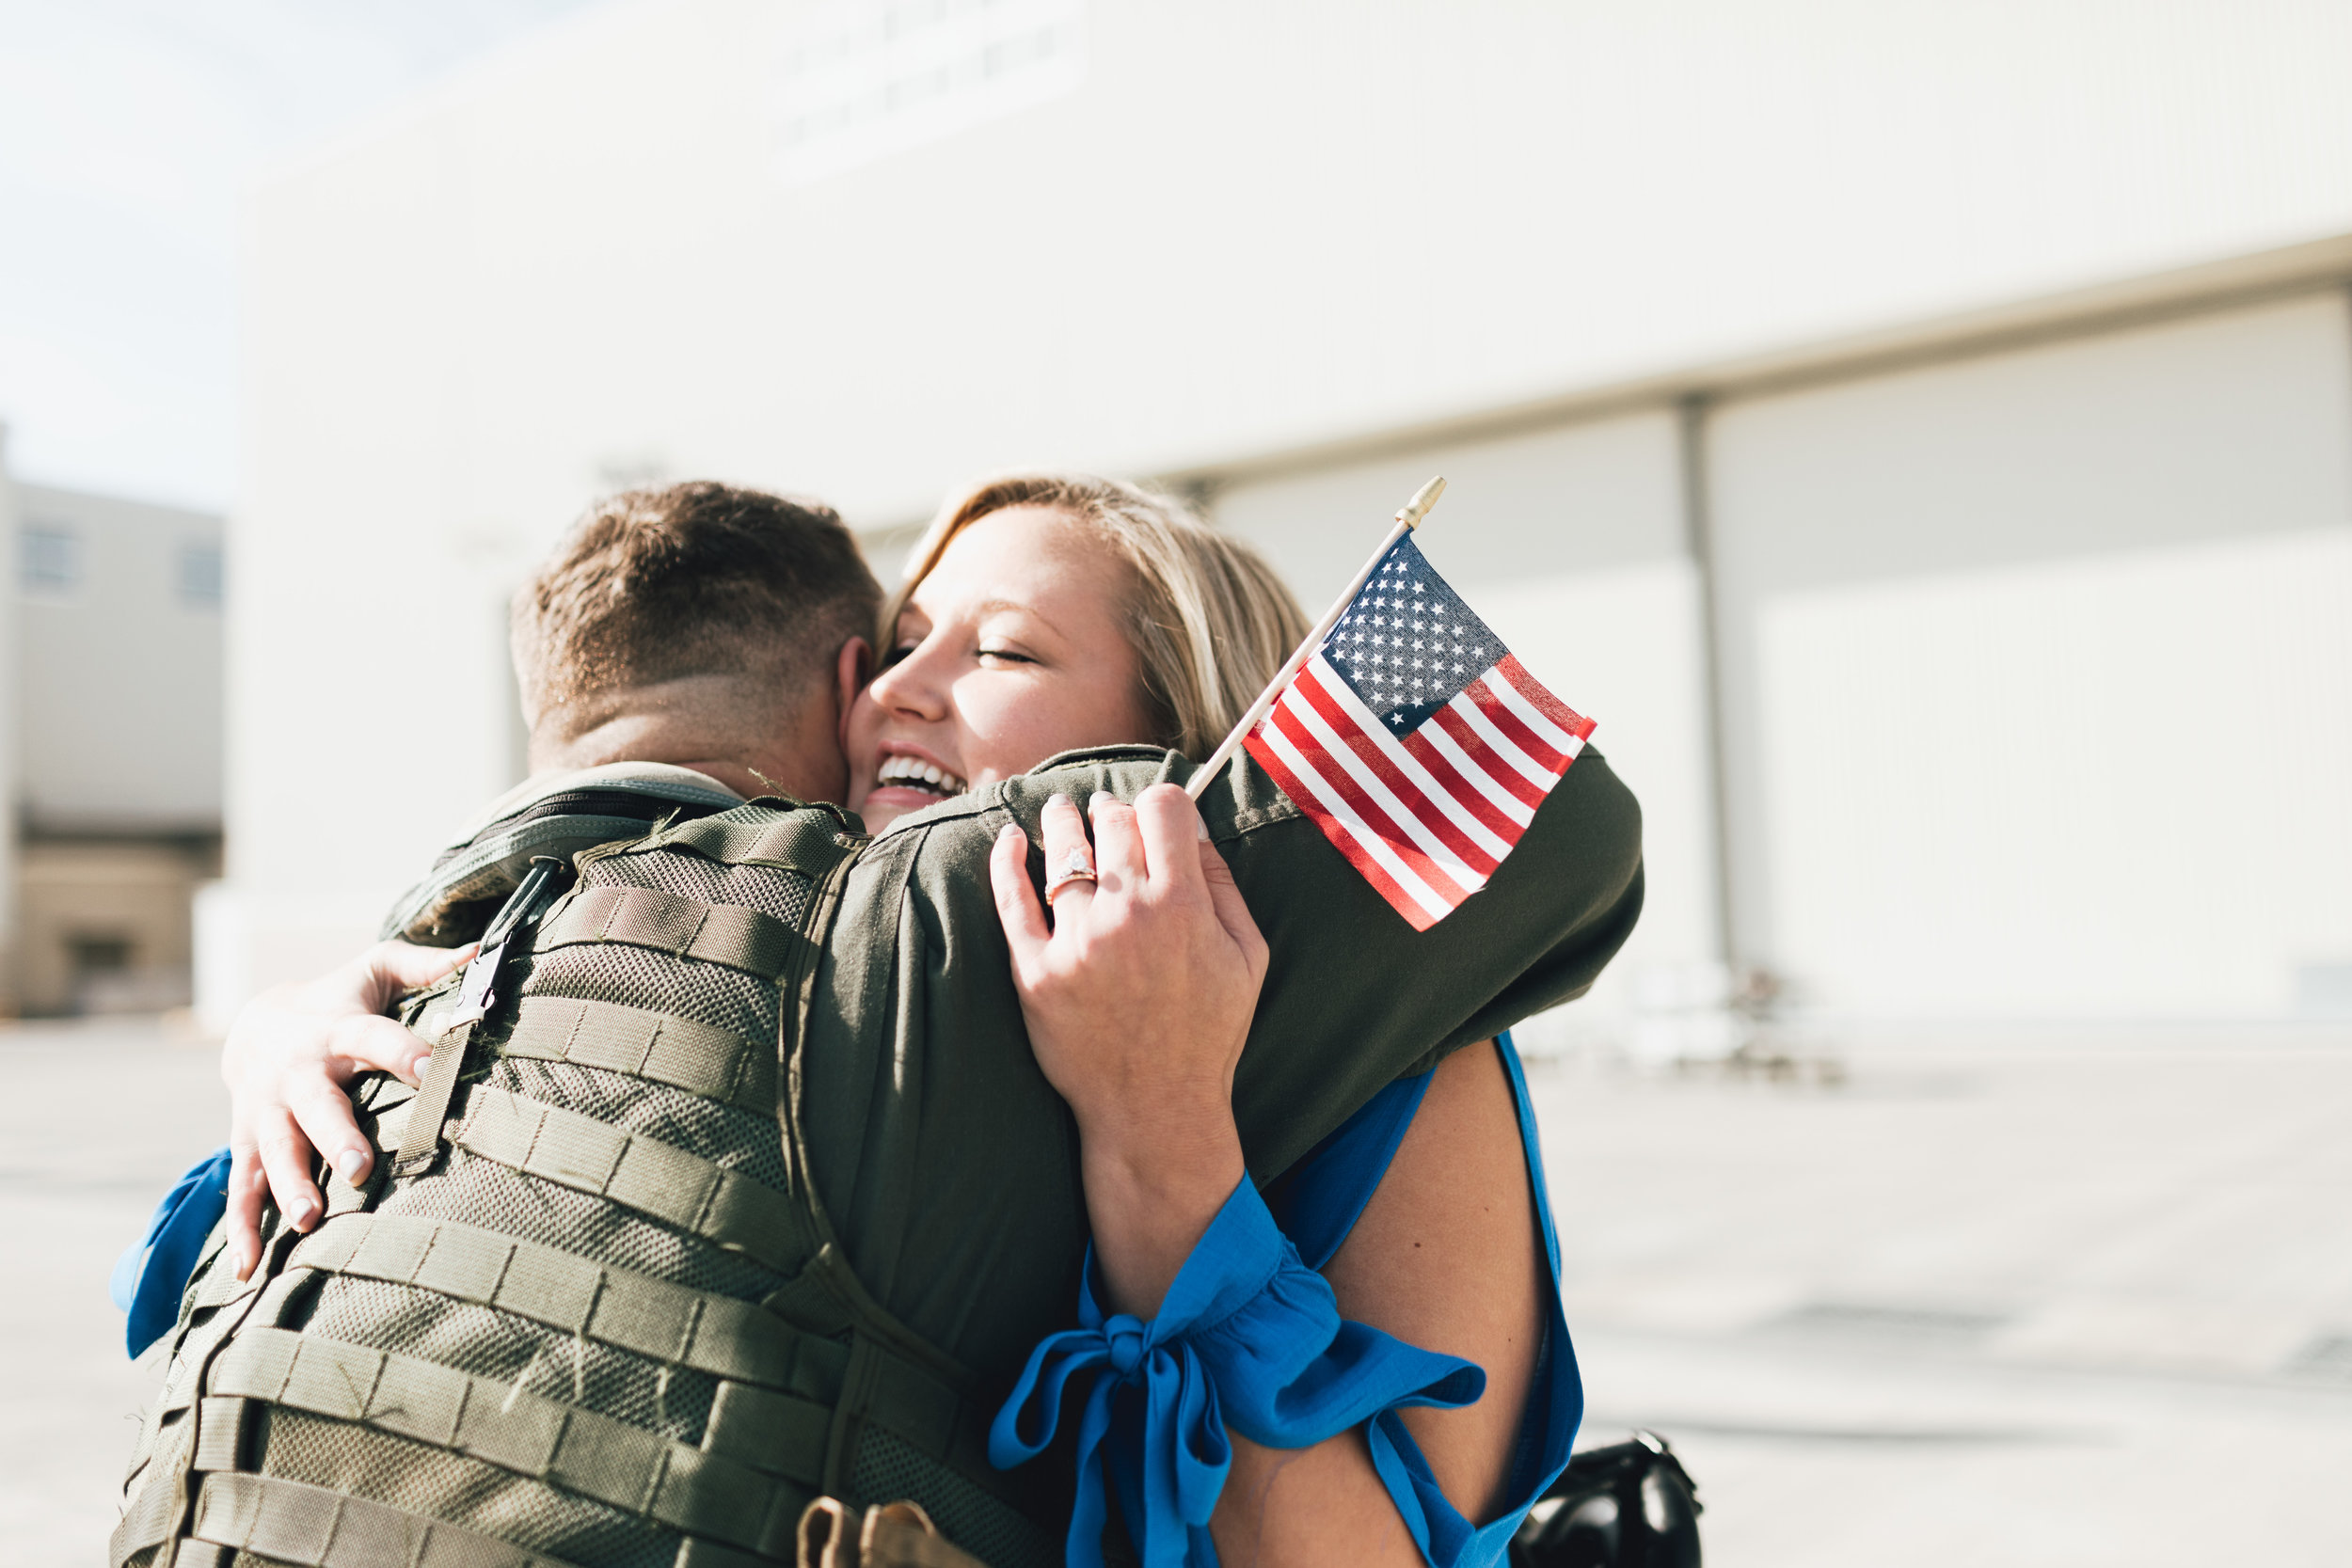 military-homecoming-photos-by-samantha-look.jpg